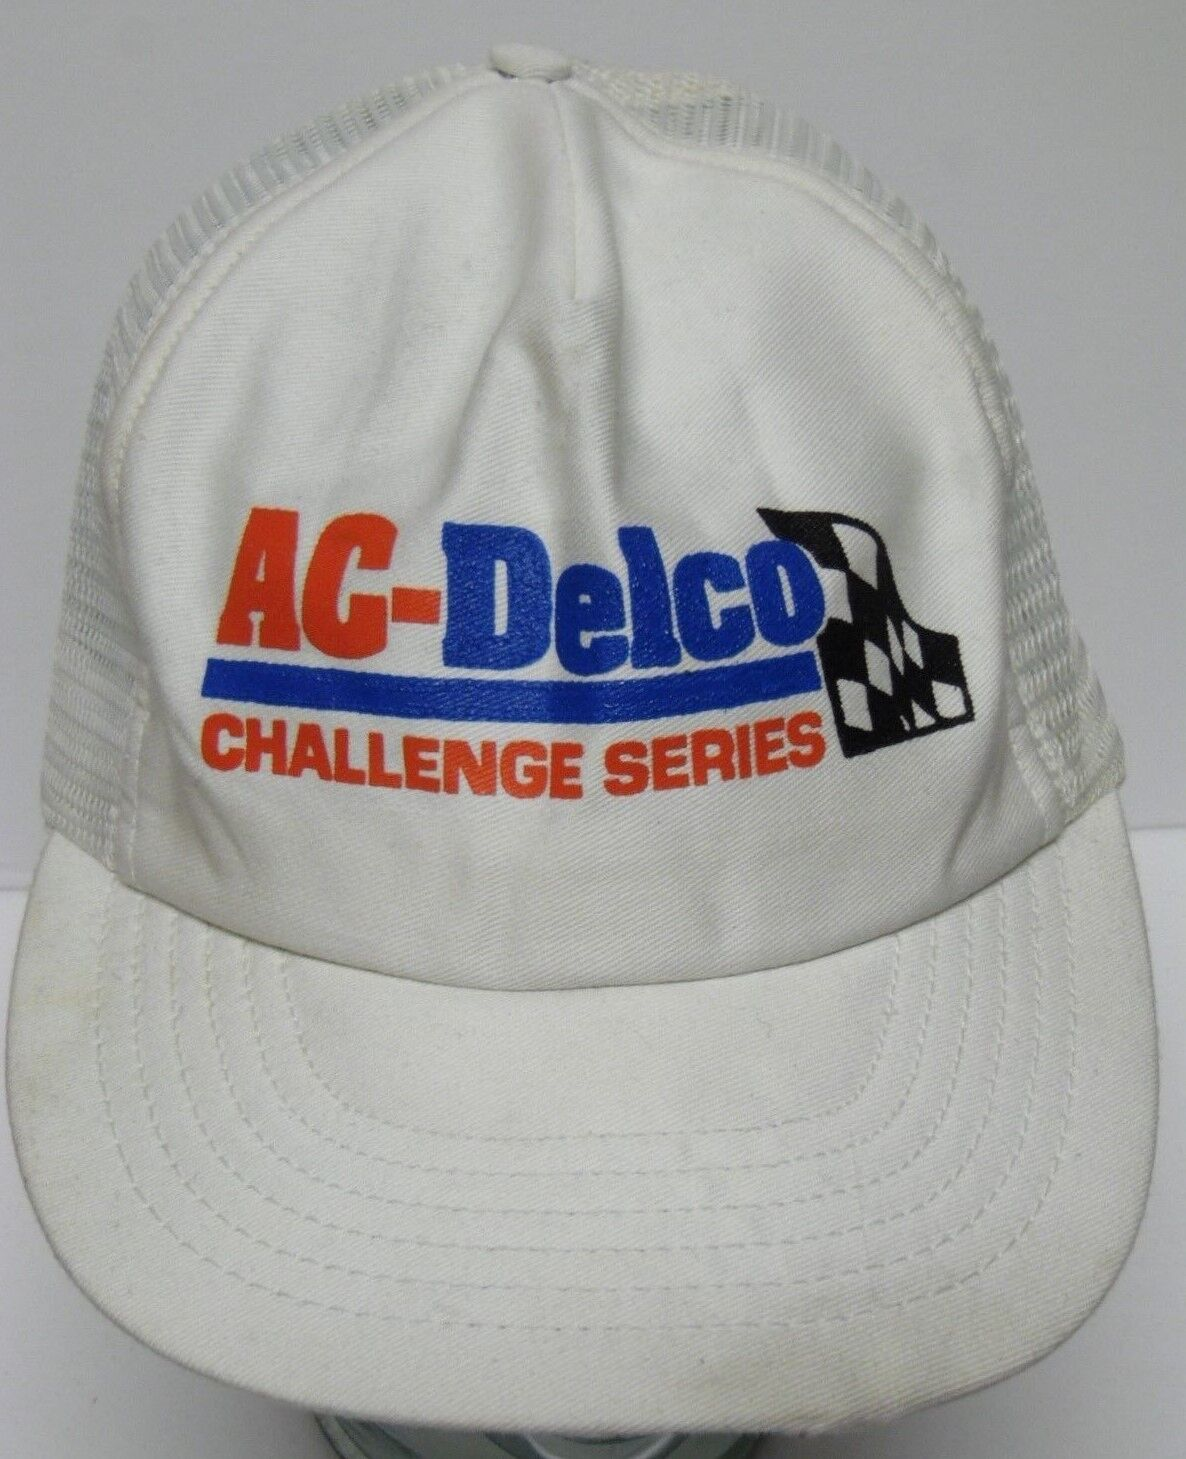 Vtg 1980s CHALLENGE 90s ASA AC DELCO CHALLENGE 1980s SERIES RACING SNAPBACK ADVERTISING HAT CAP 02027f